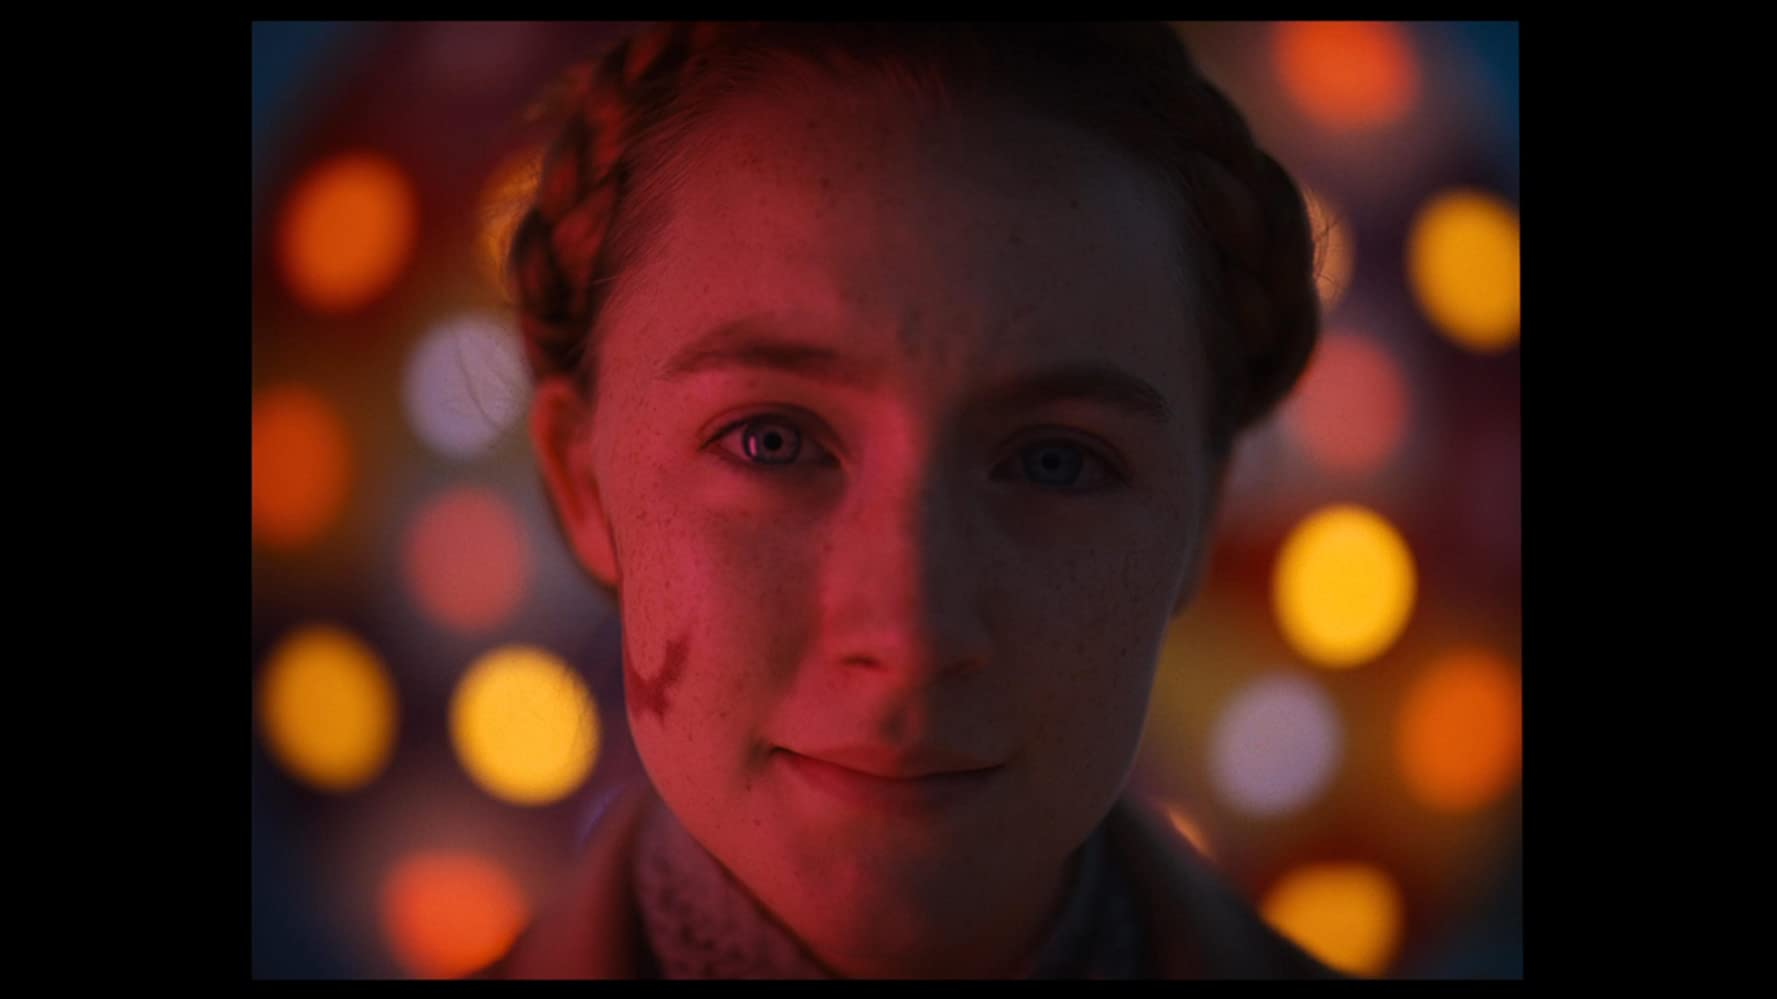 Saoirse Ronan in The Grand Budapest Hotel (2014)